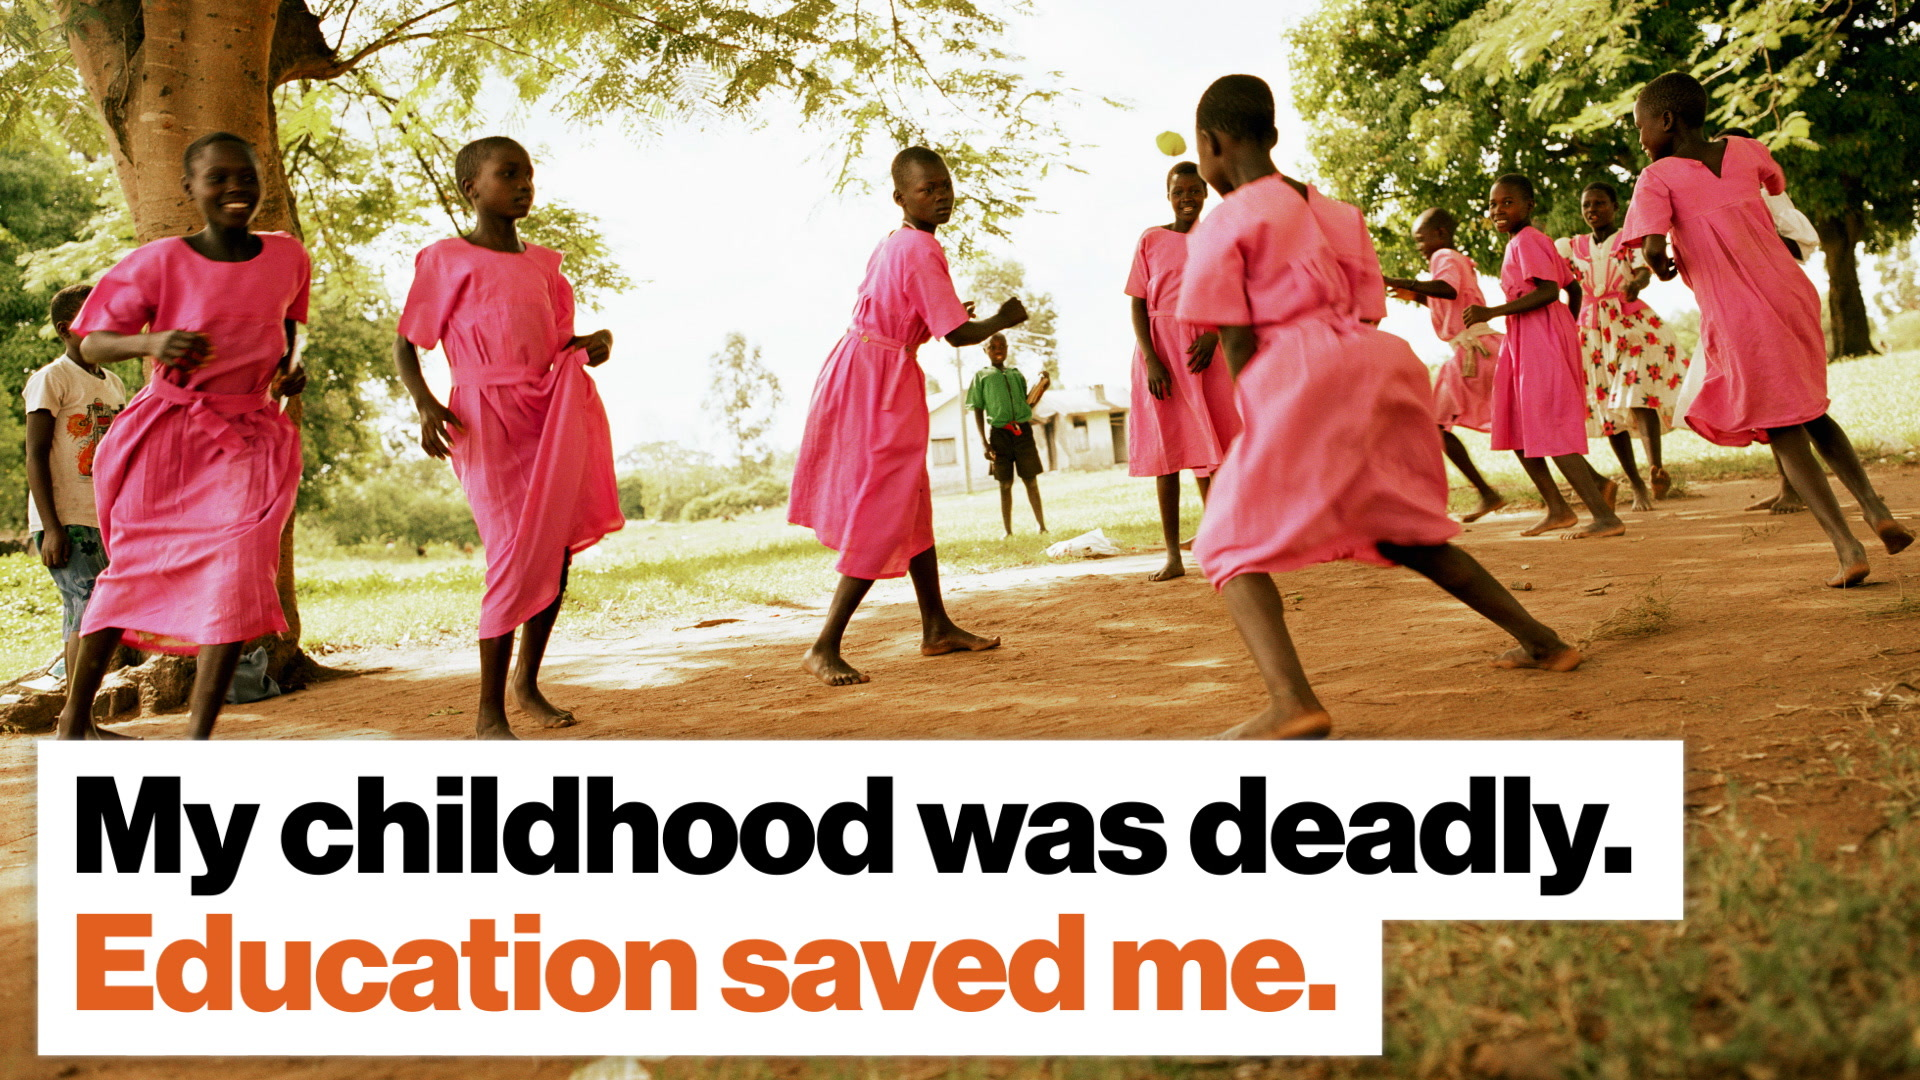 My childhood was deadly. Education saved me.